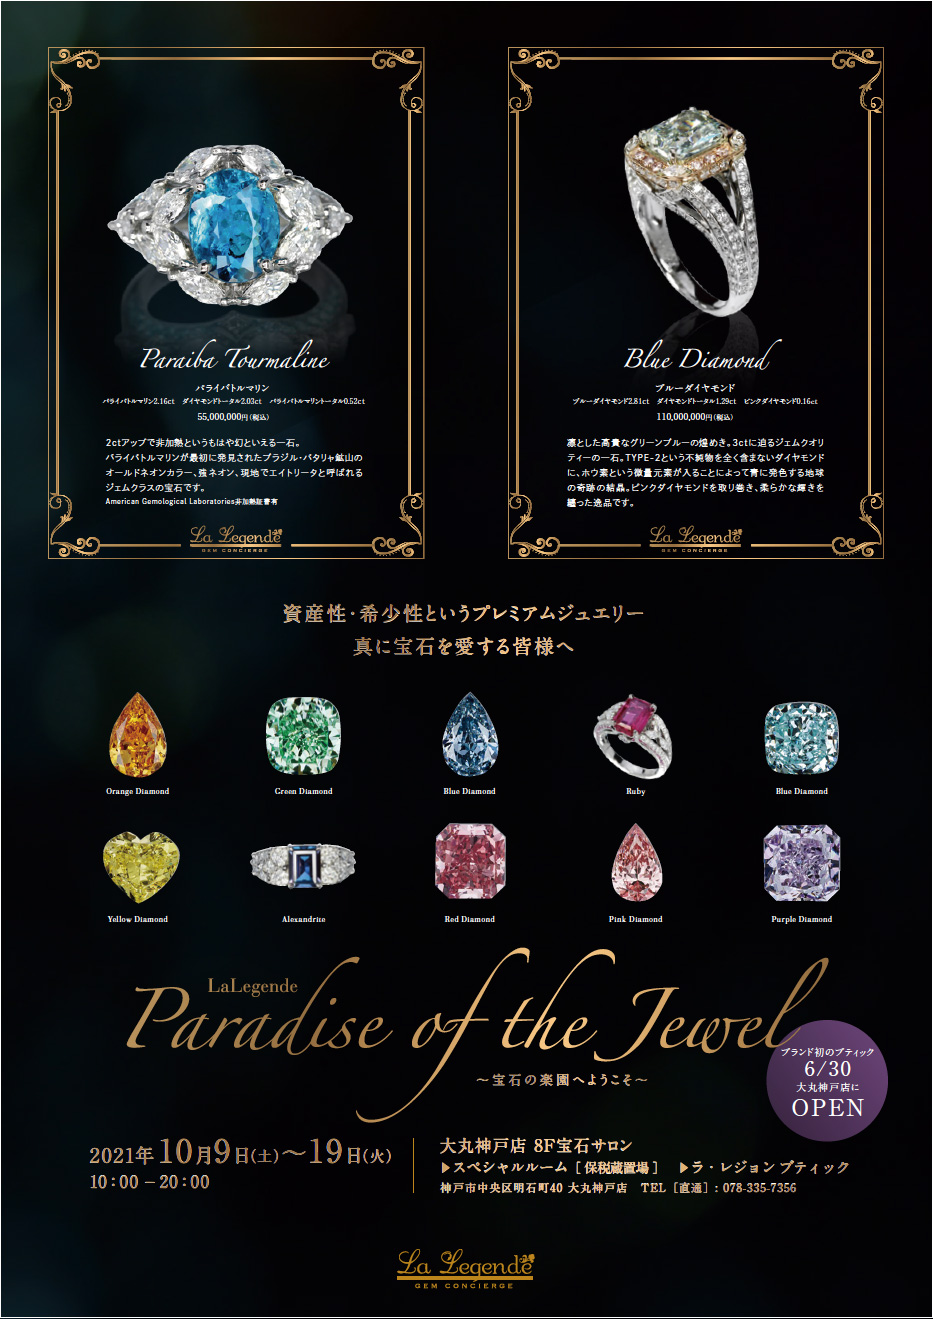 Paradise of the Jewel